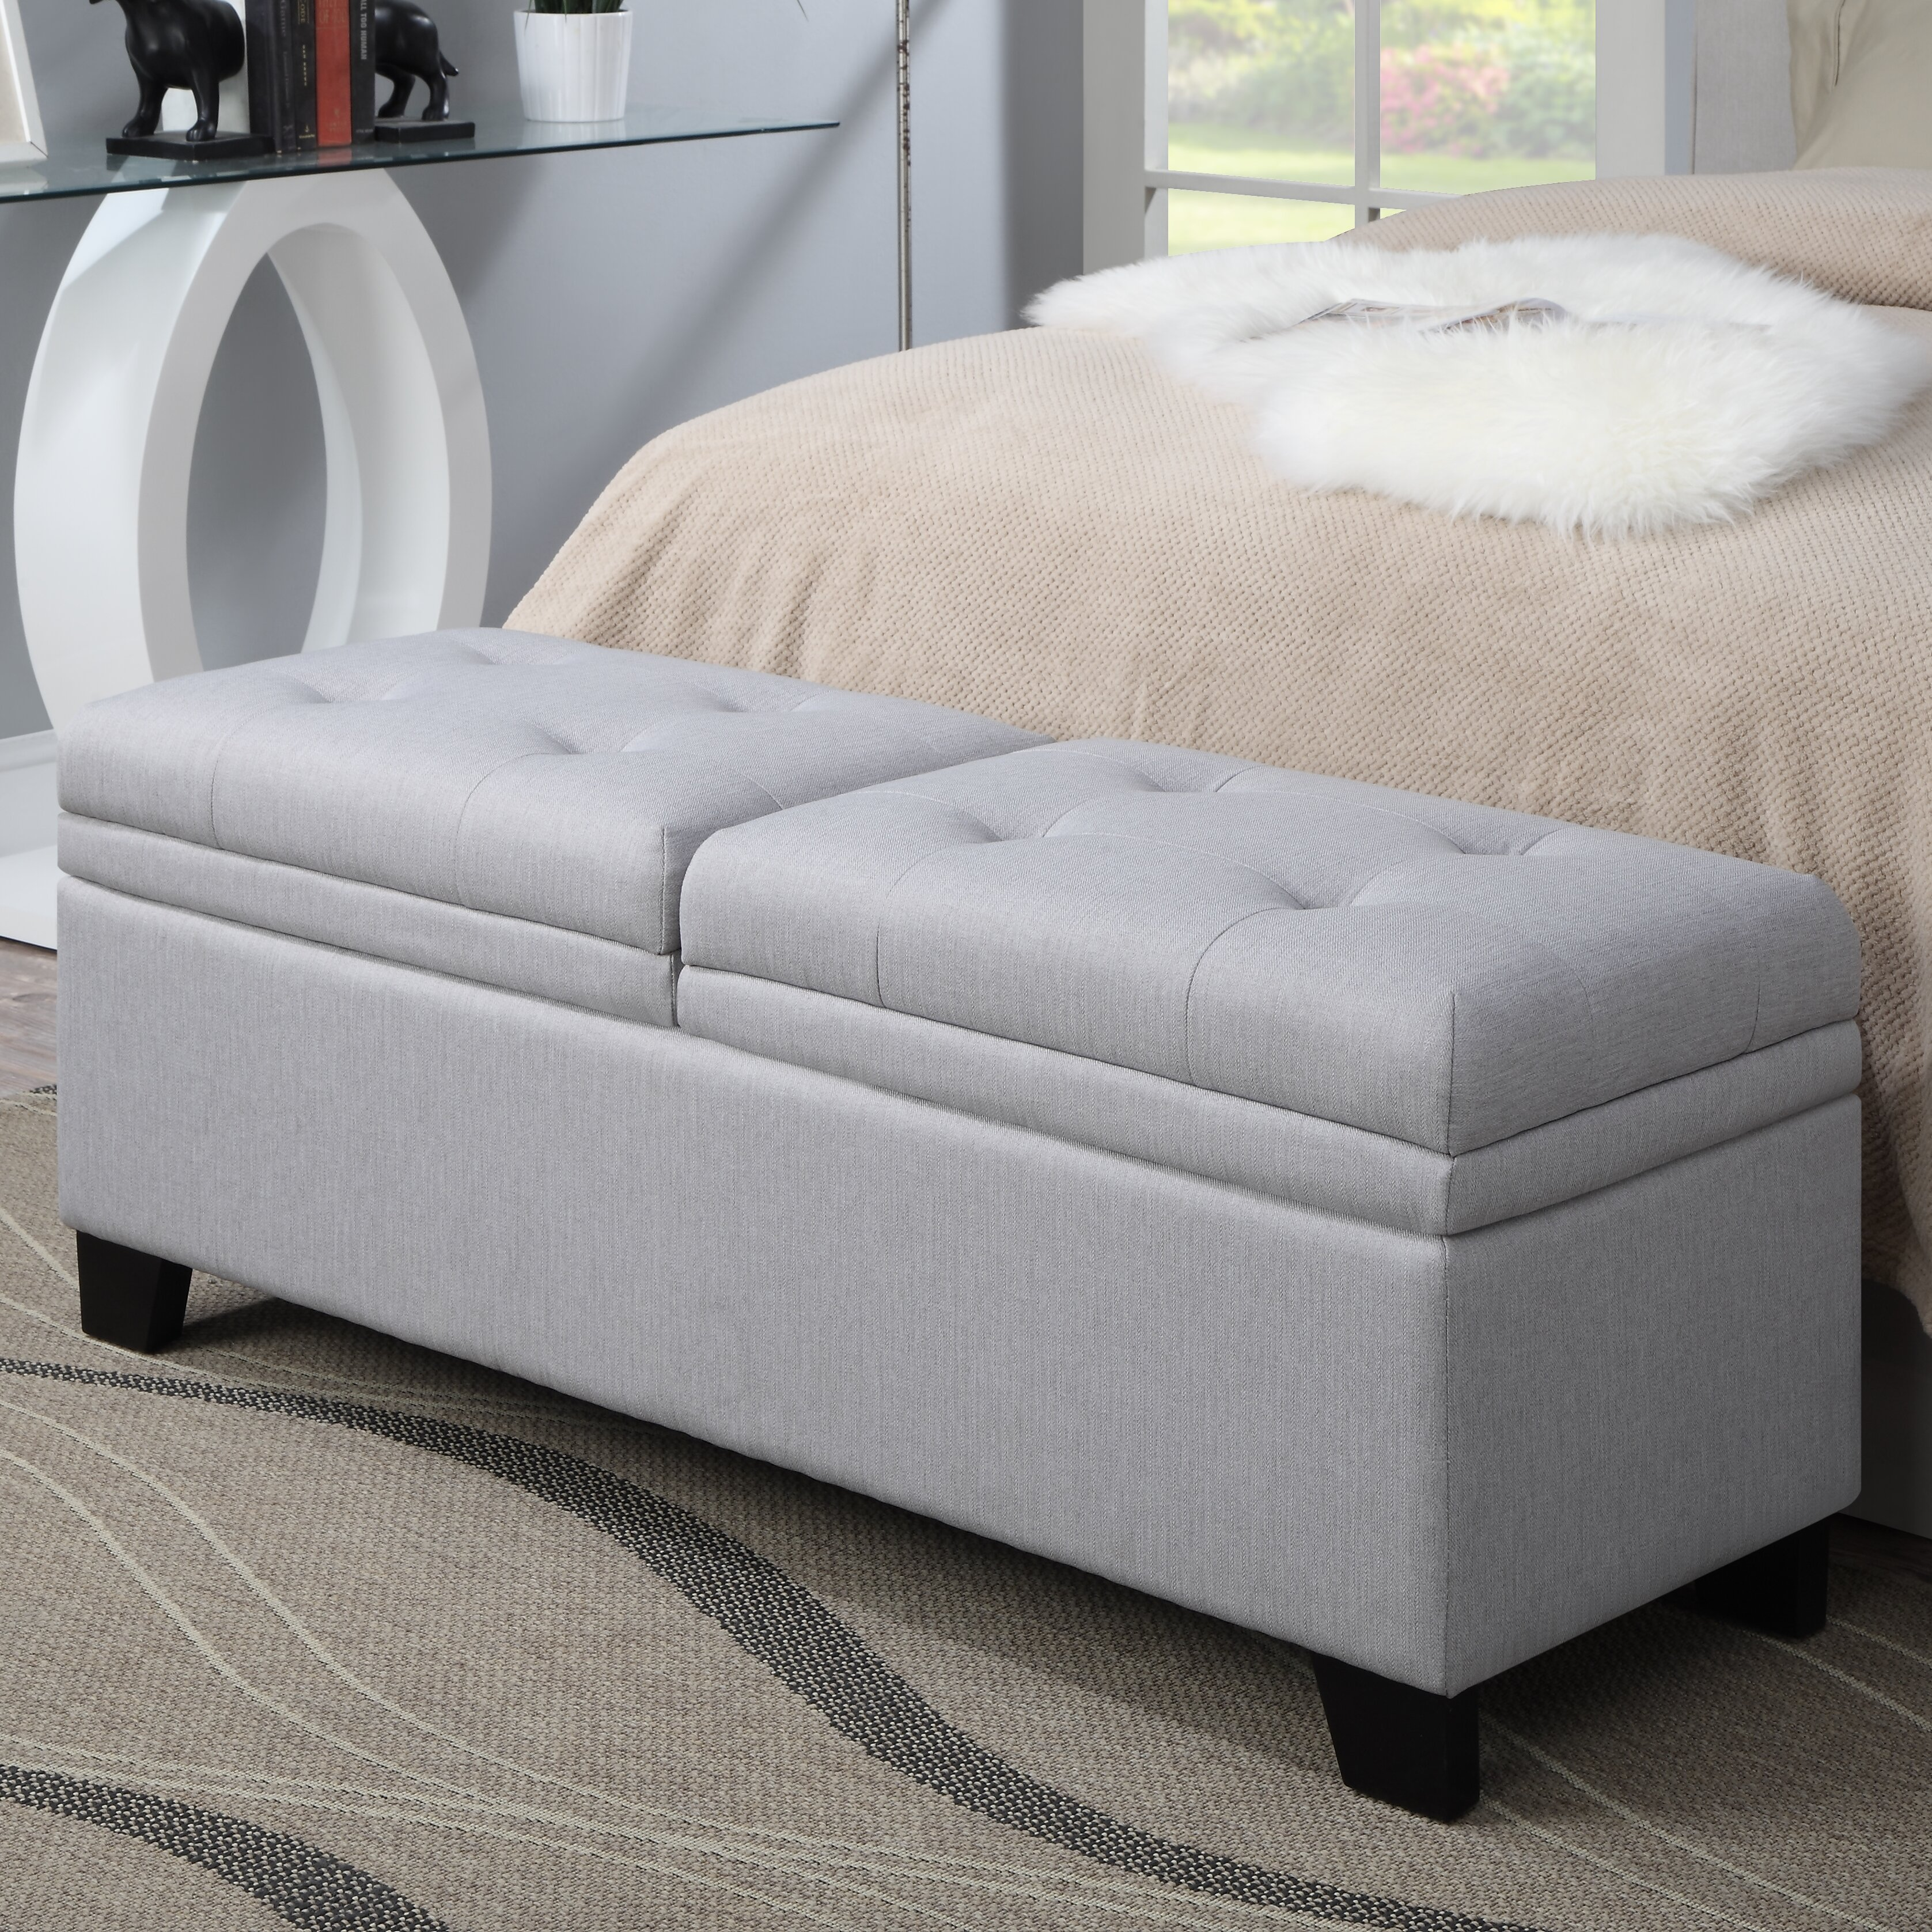 Pri Lilac Fields Upholstered Bedroom Storage Bench Reviews Wayfair